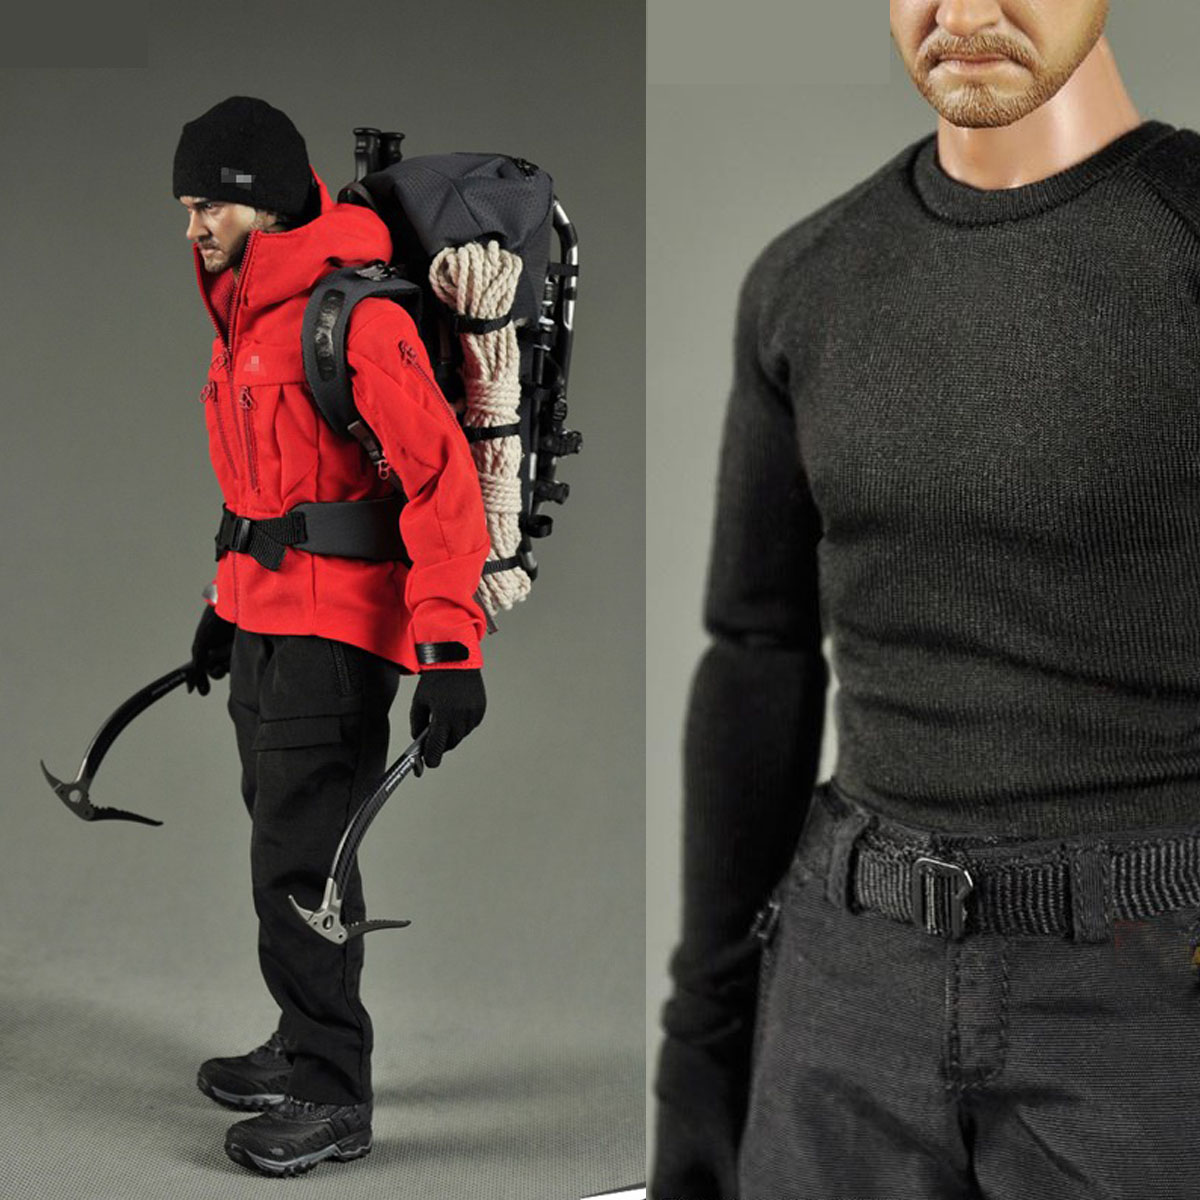 Mnotht Toy 1/6 F-023 Outdoor Gear Clothing Suits + Head Set for 12 Male Action Figure Body Accessories Action Toy Figures L30